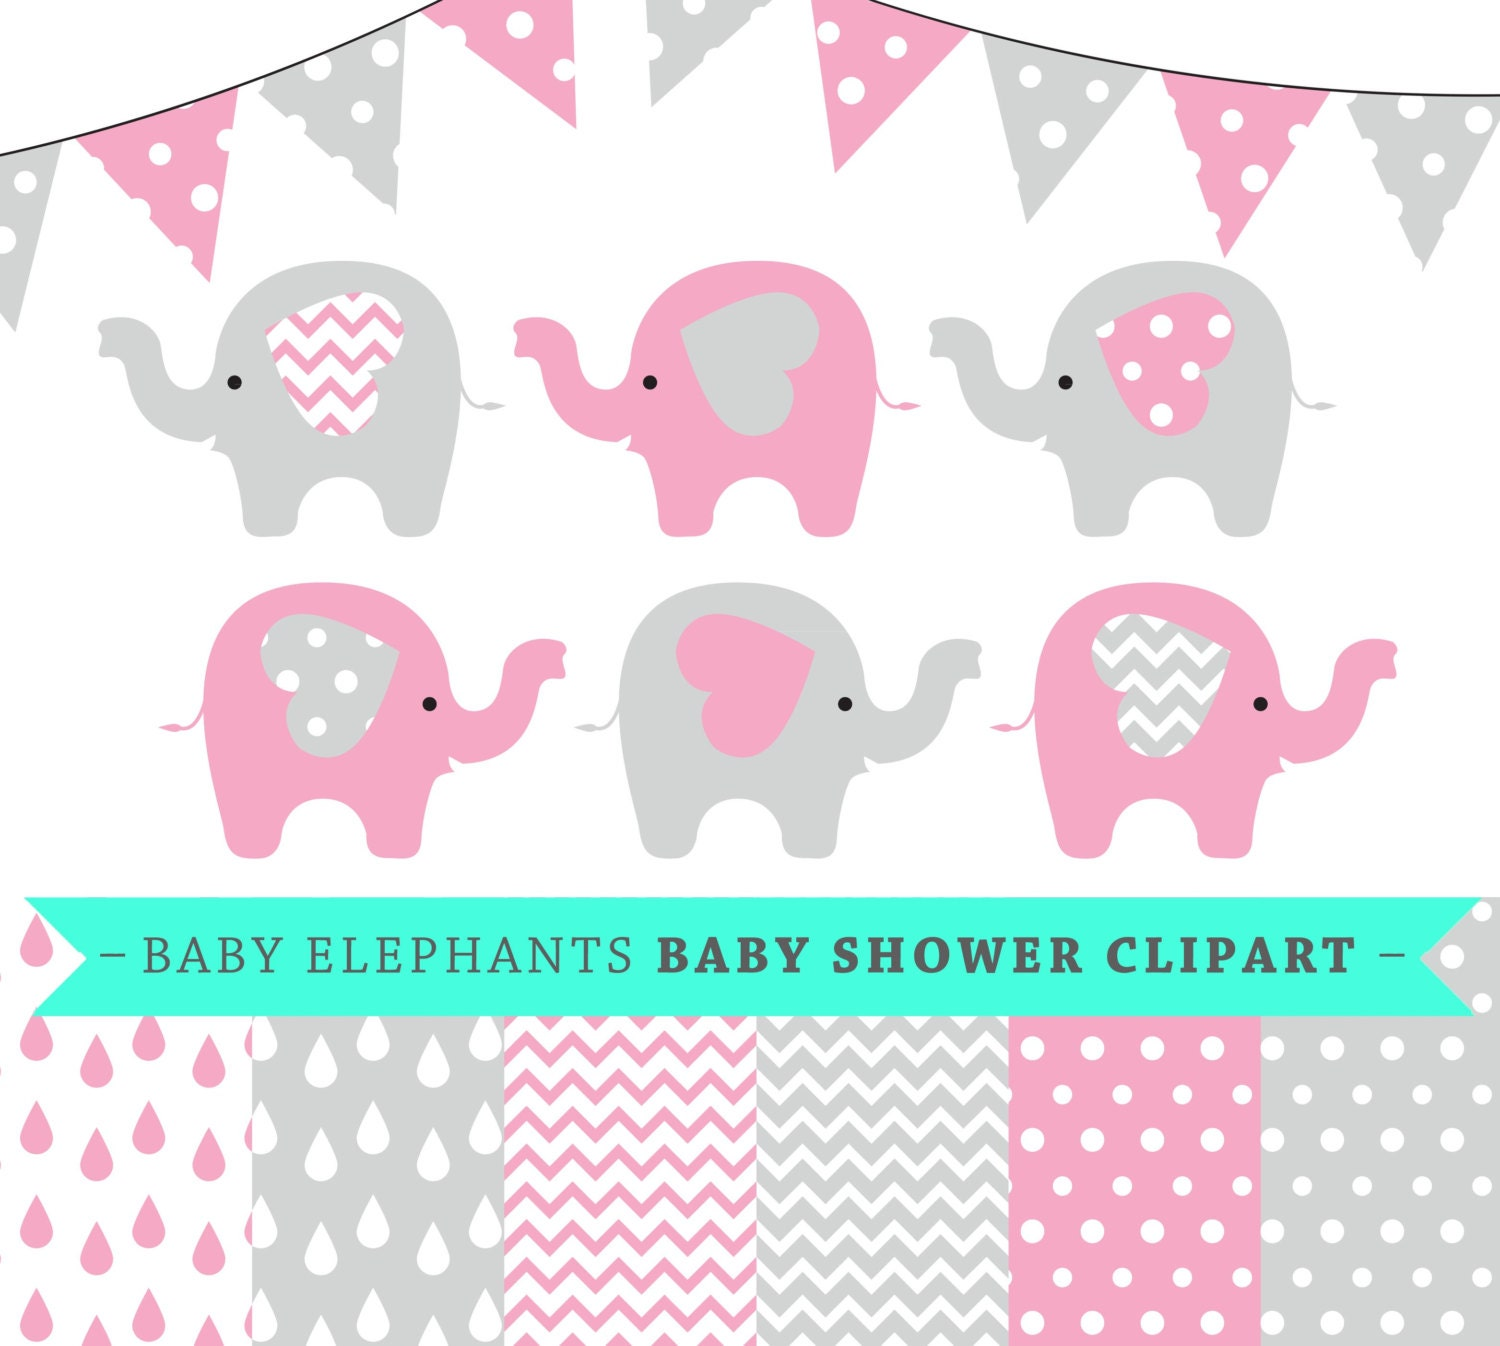 premium baby shower vector clipart baby elephants pink and